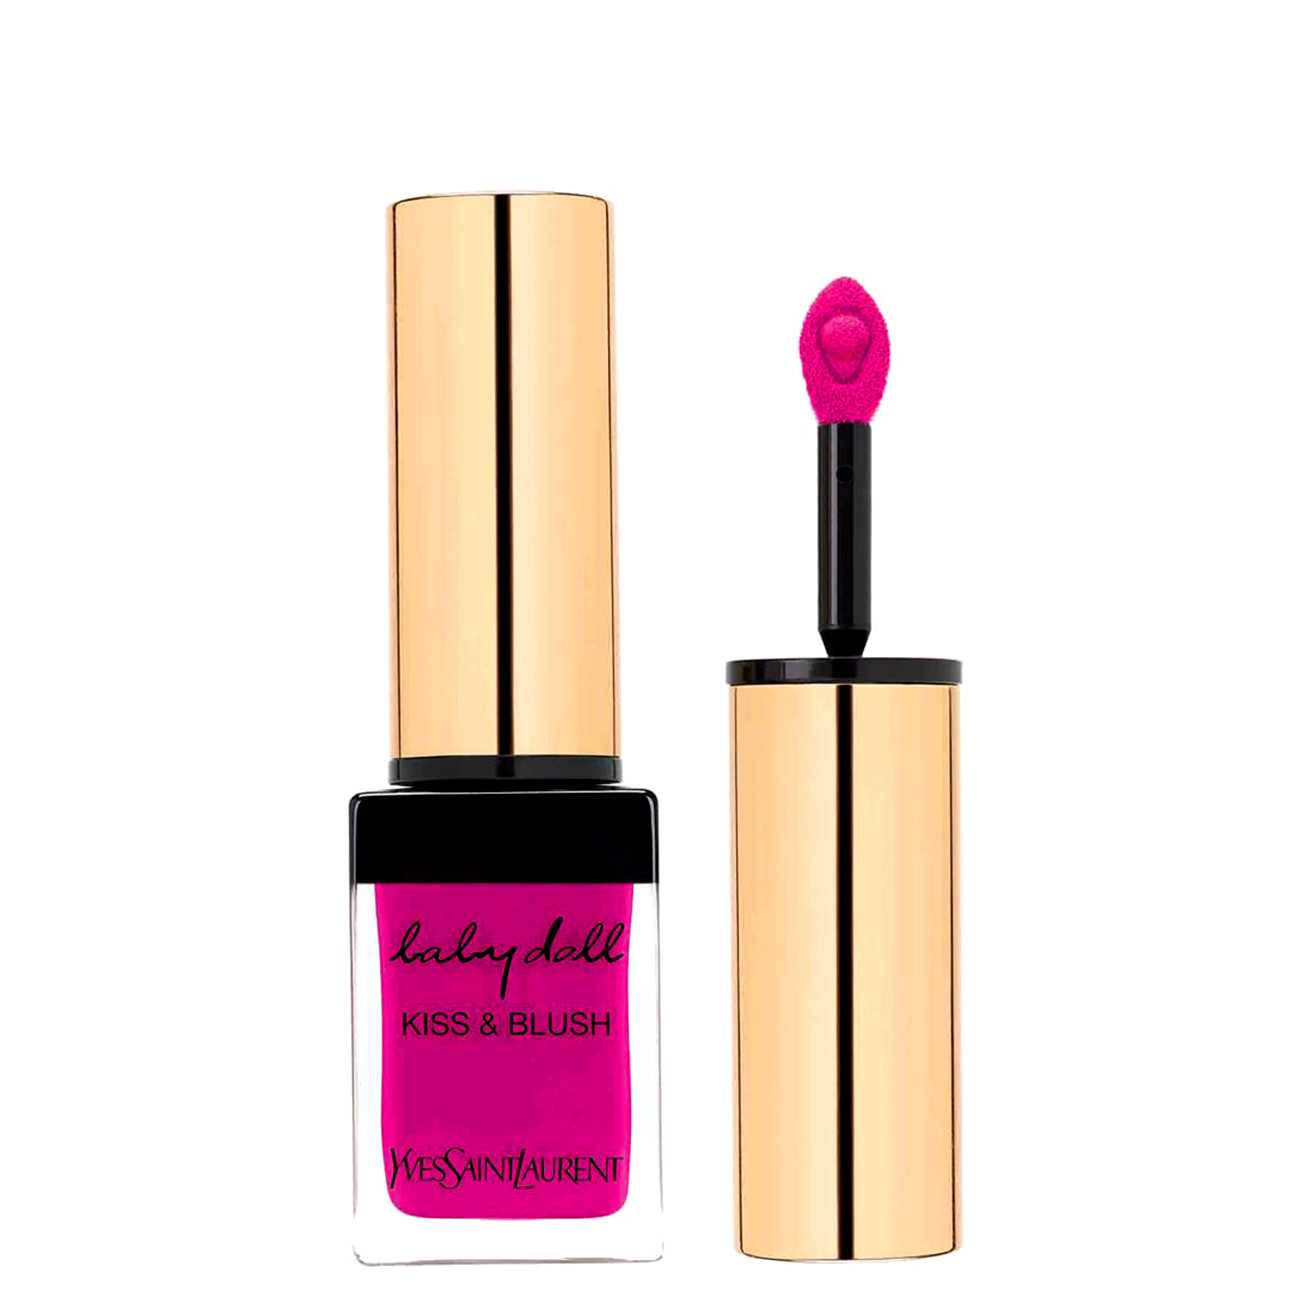 Baby Doll Kiss And Blush 10 G Fuchsia Desinvolte 1 Yves Saint Laurent imagine 2021 bestvalue.eu